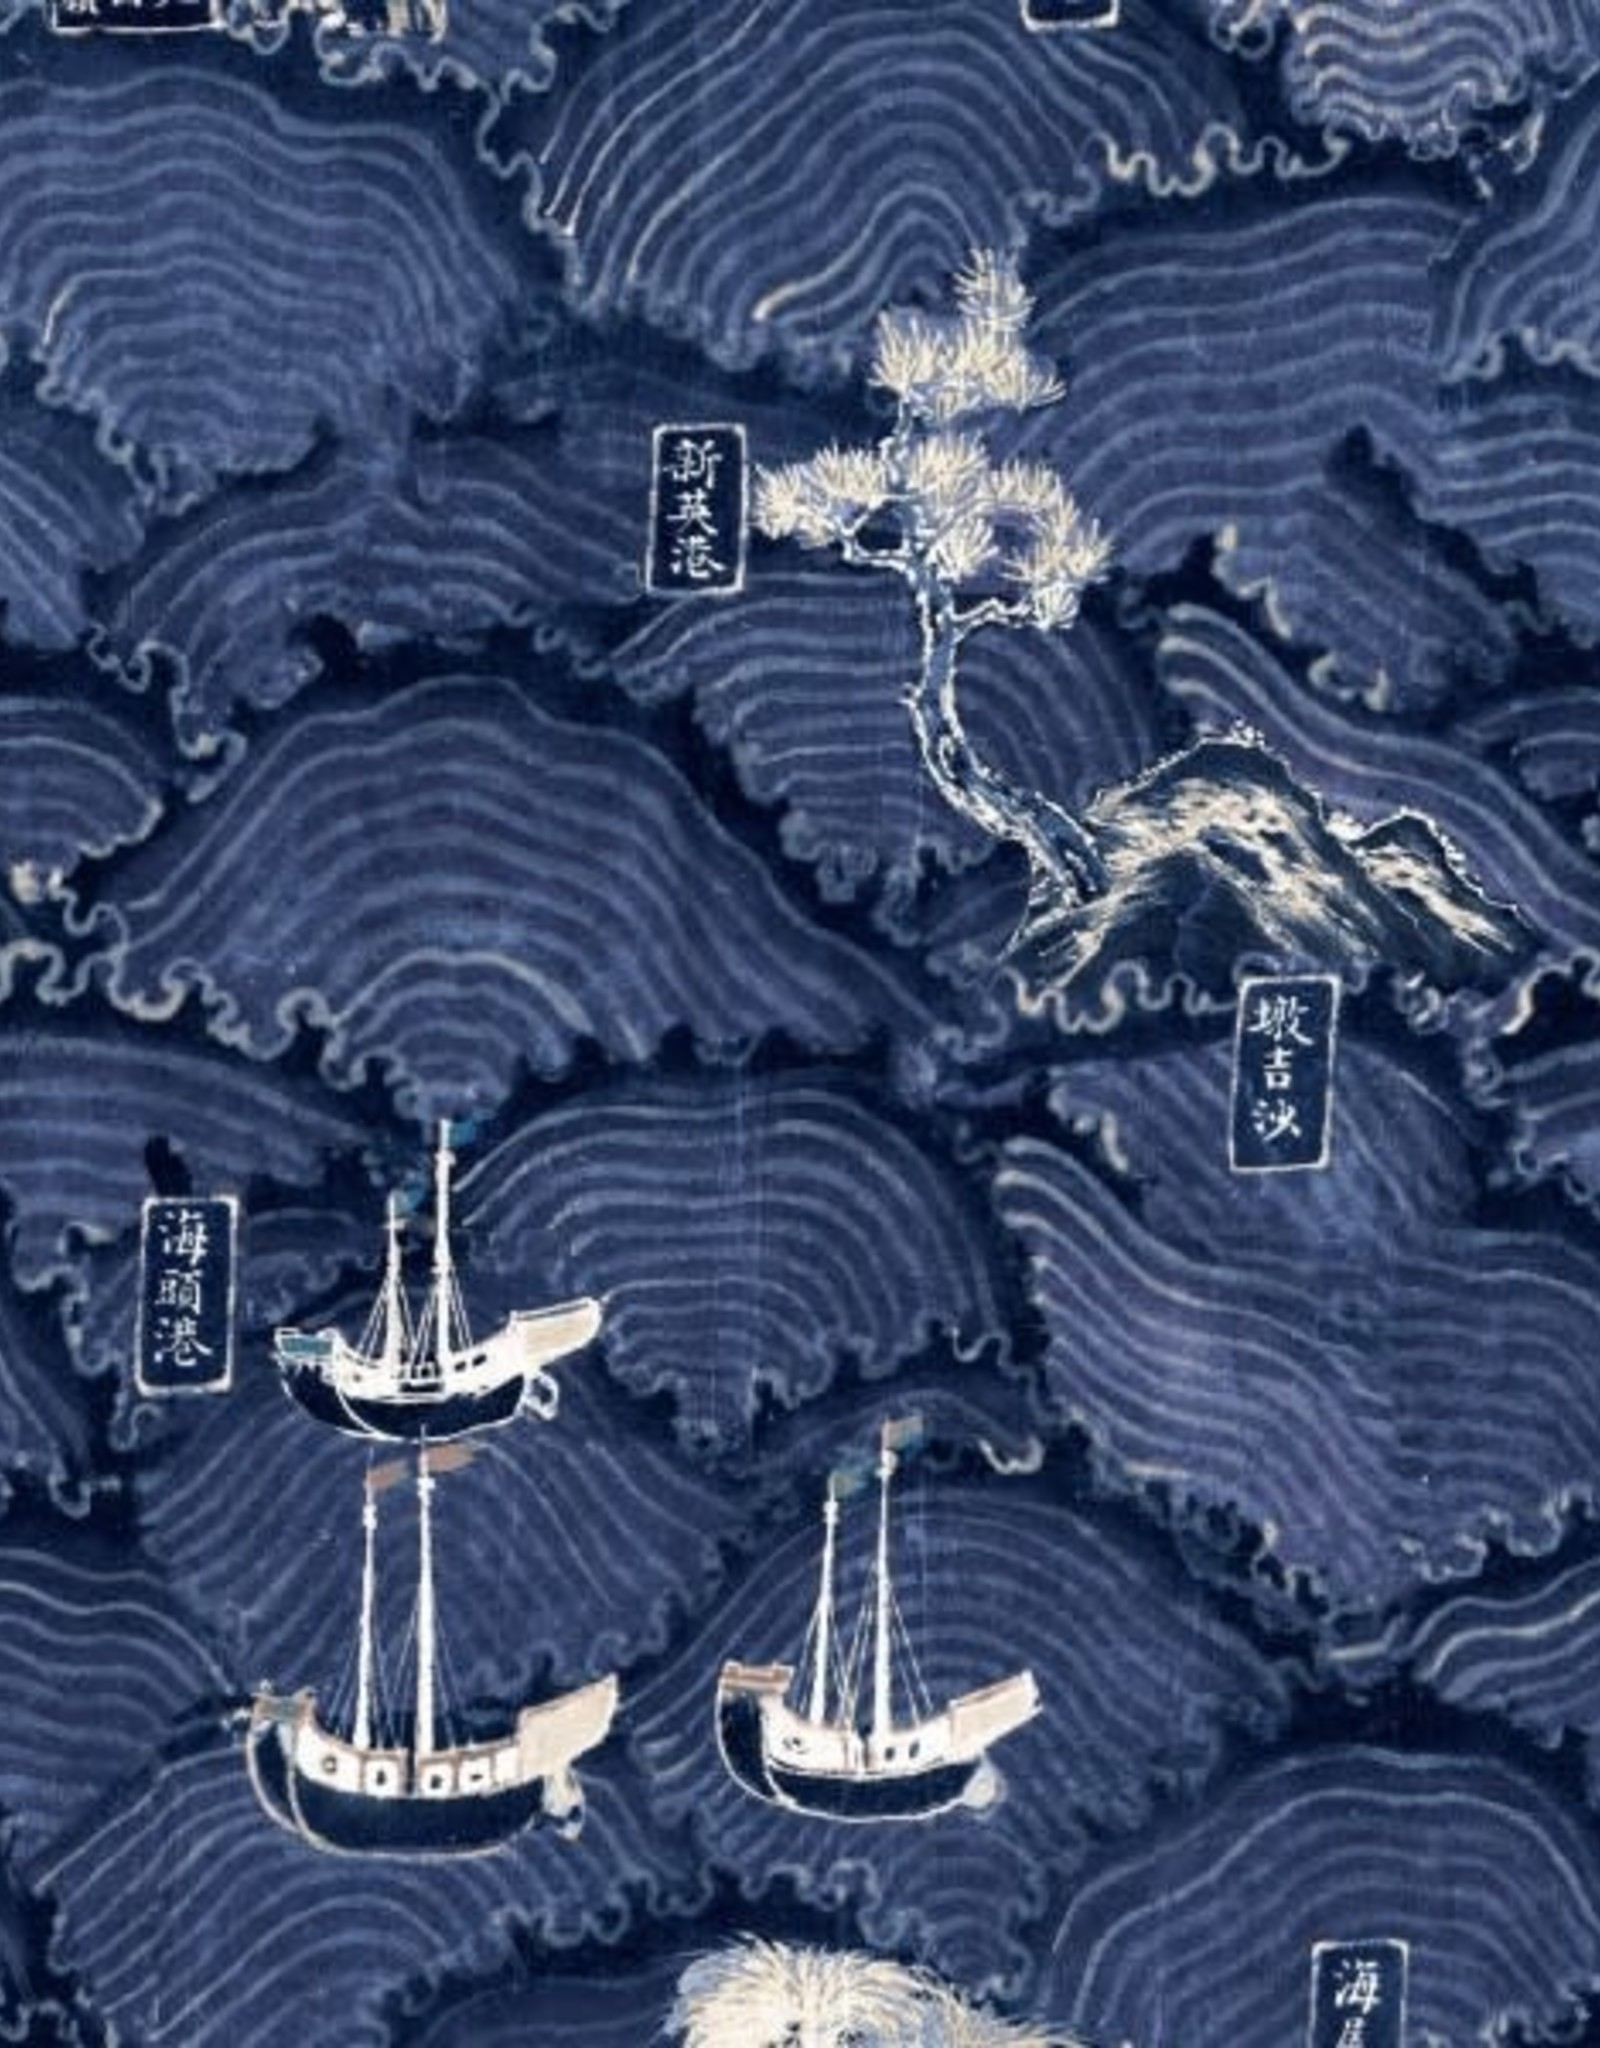 Behang Waves of Tsushima - 156 x 300 cm